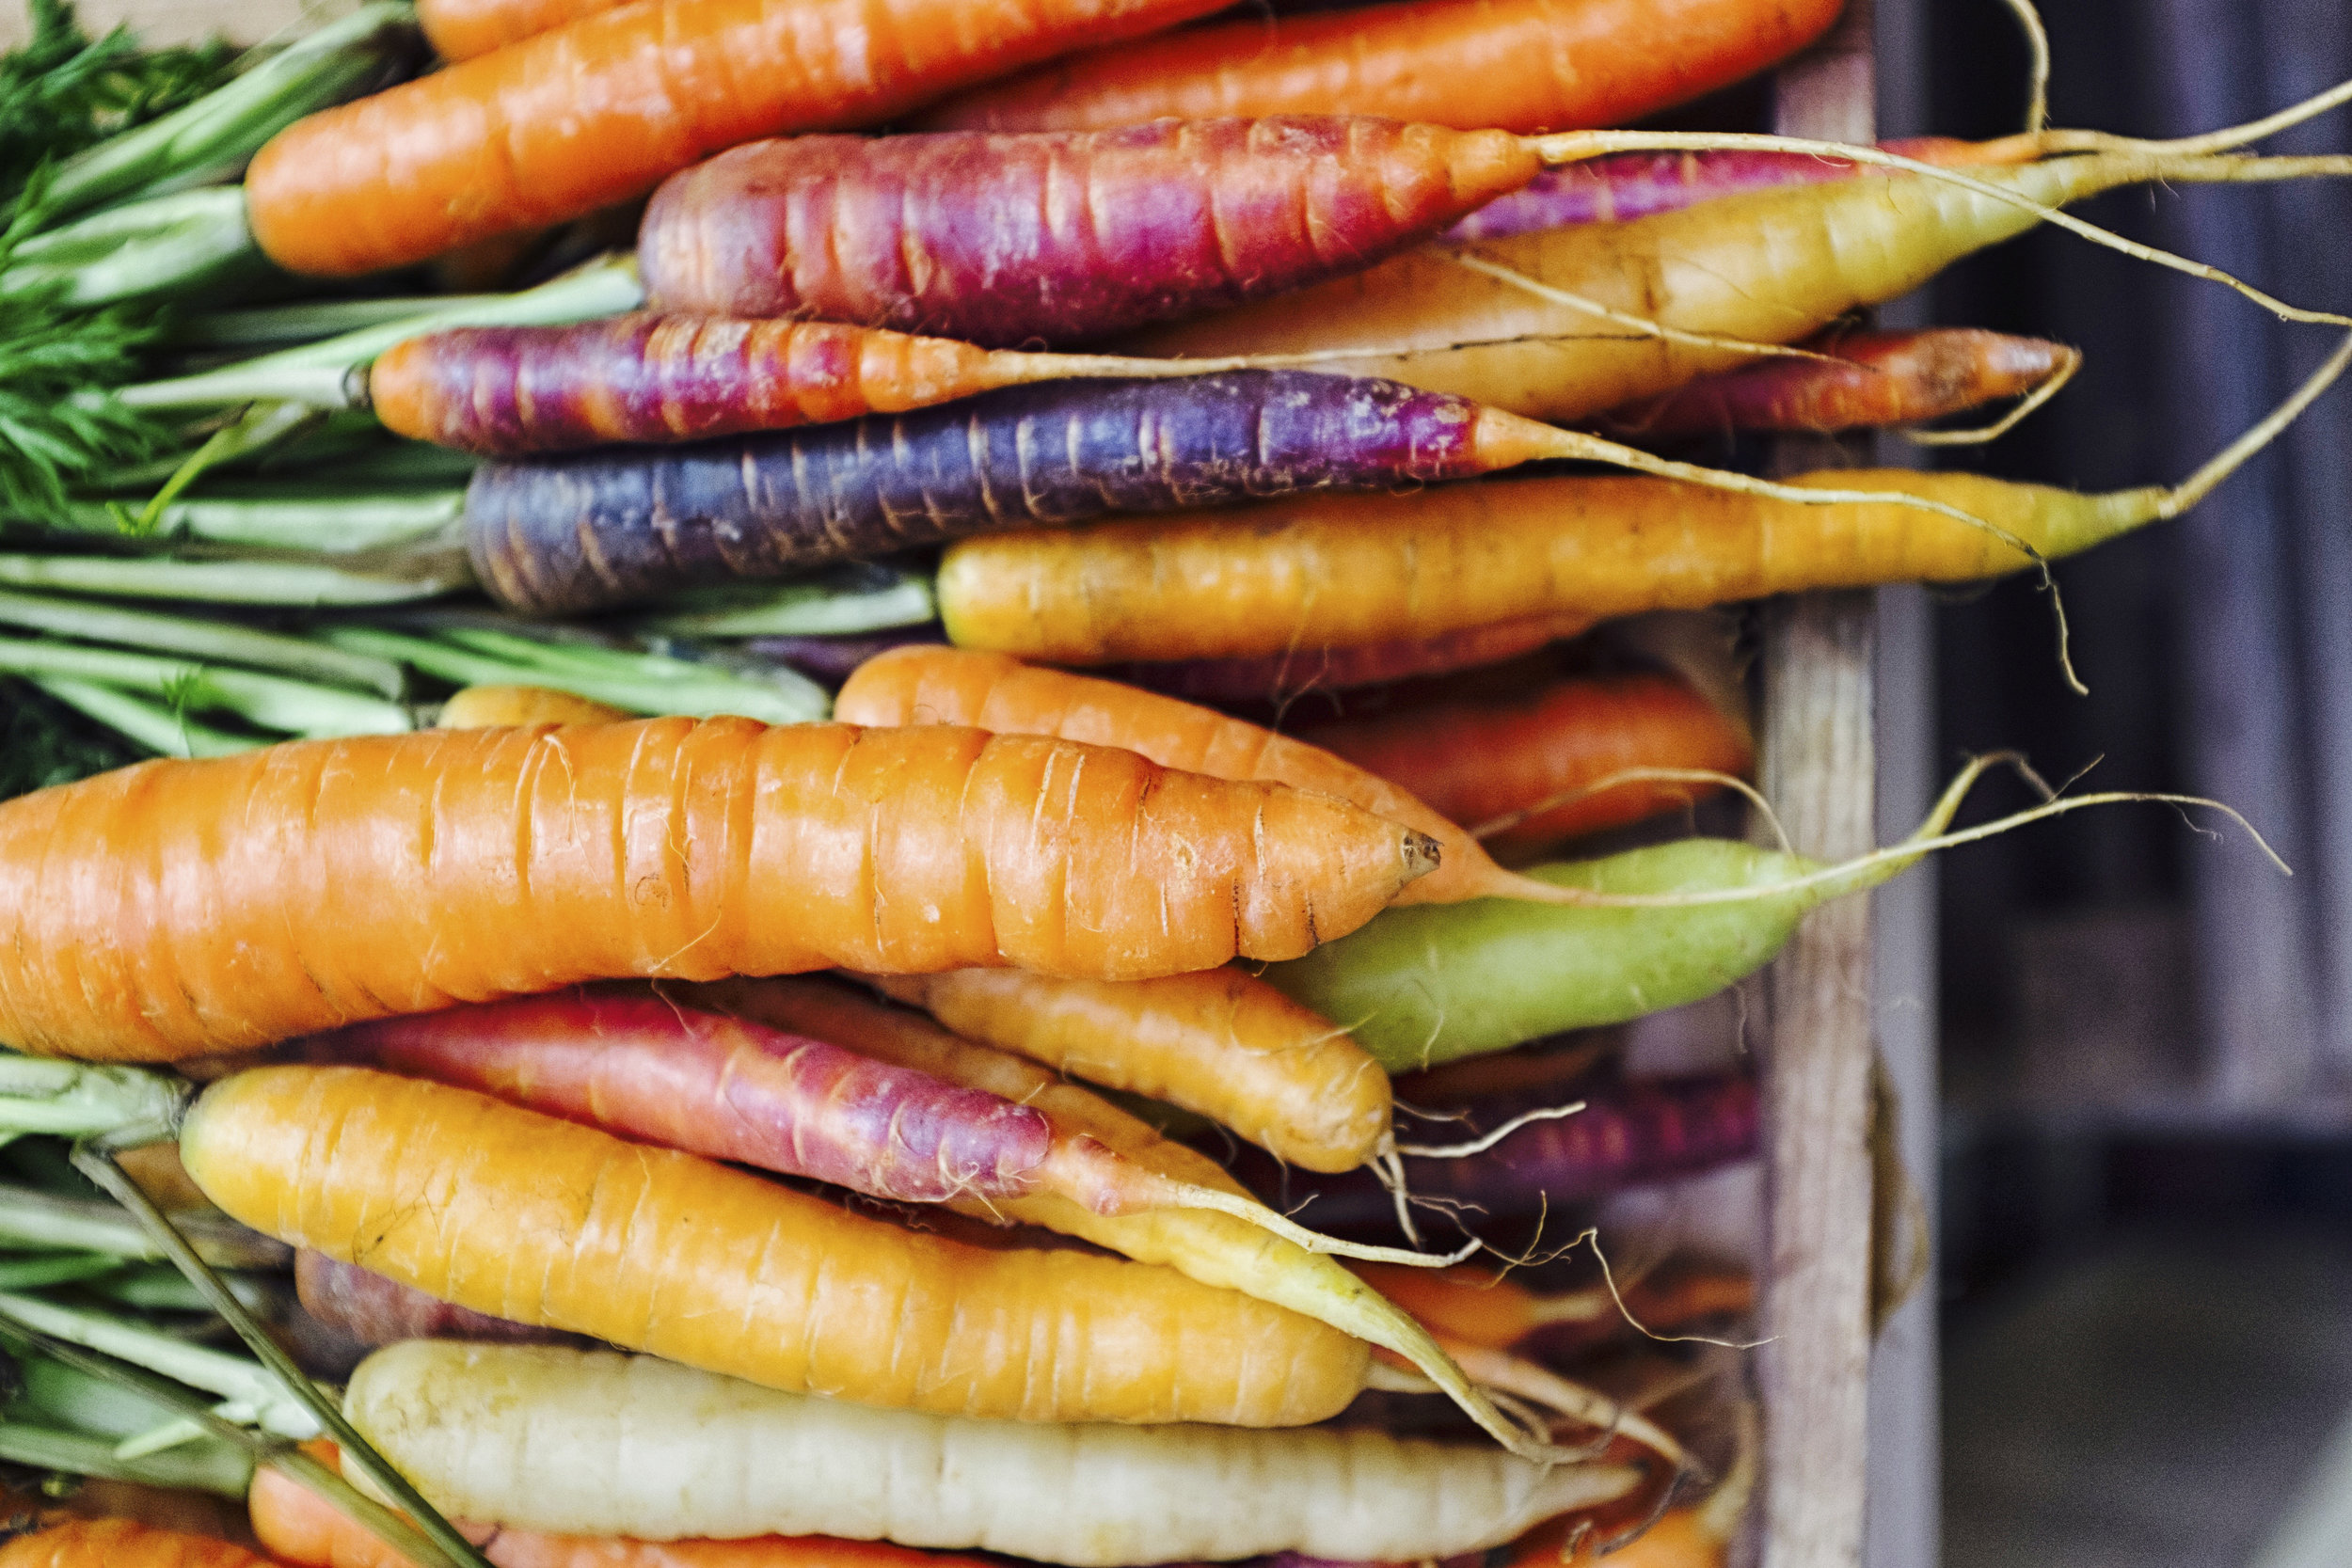 GettyImages-618540744-carrots.jpg